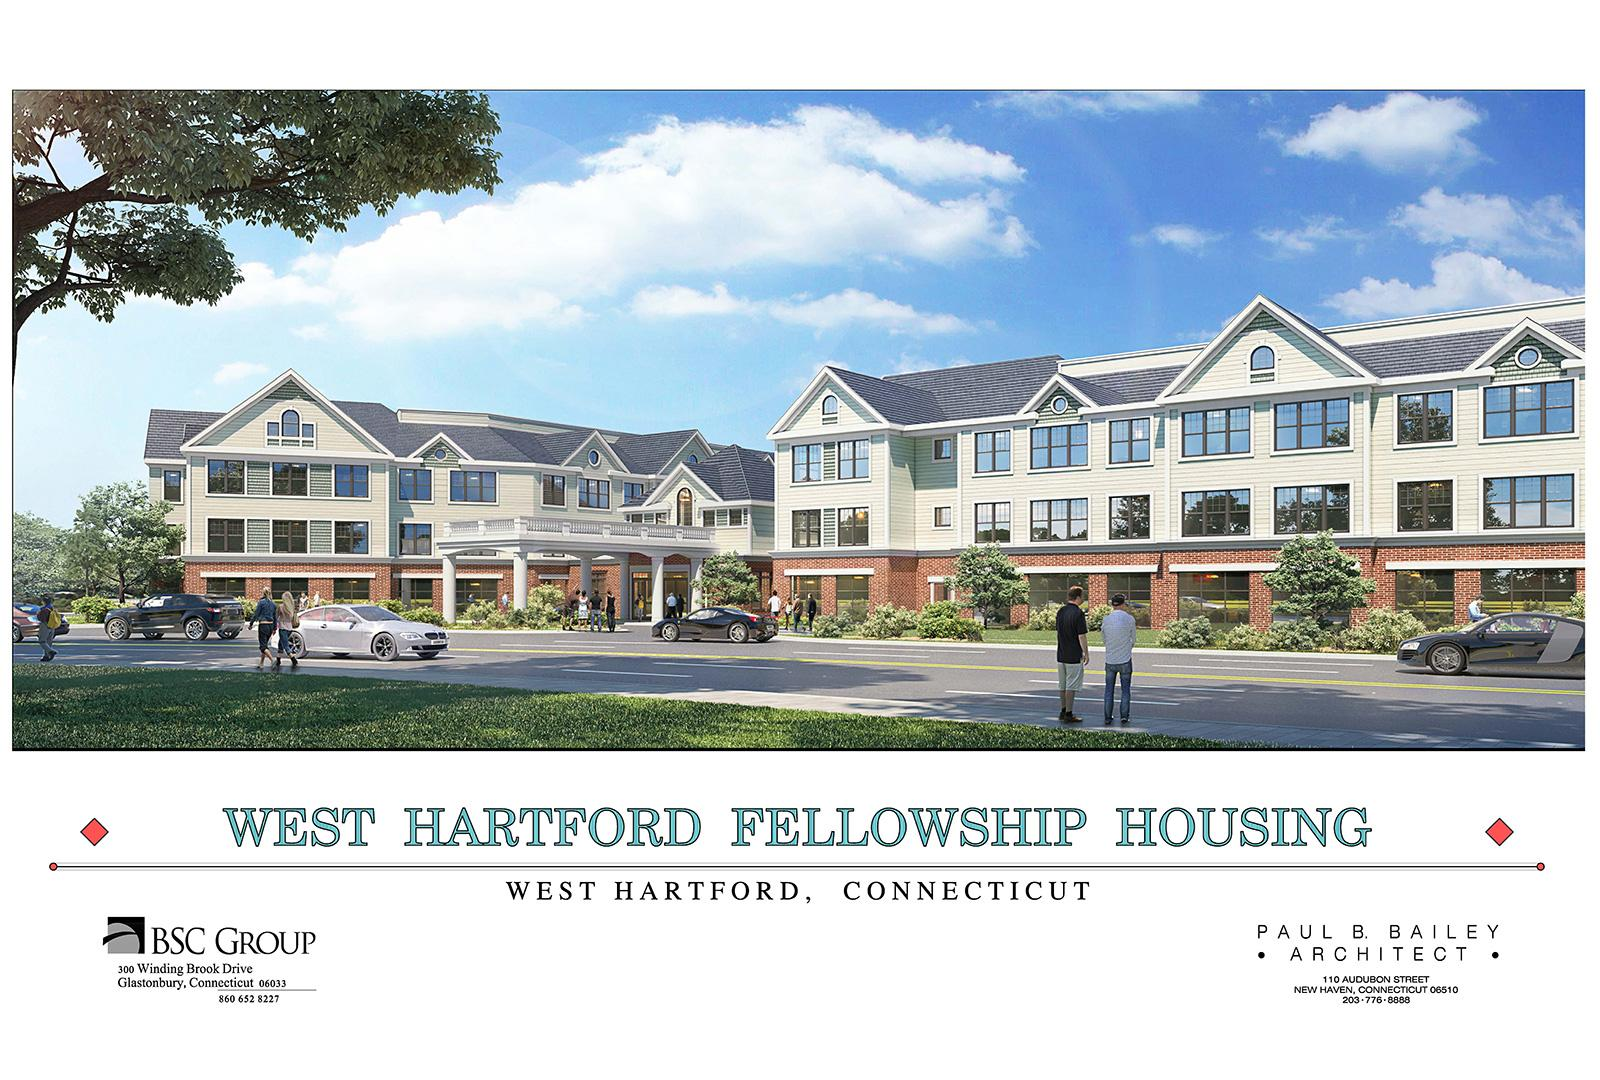 18 057 West Harftford Rendering Layout2